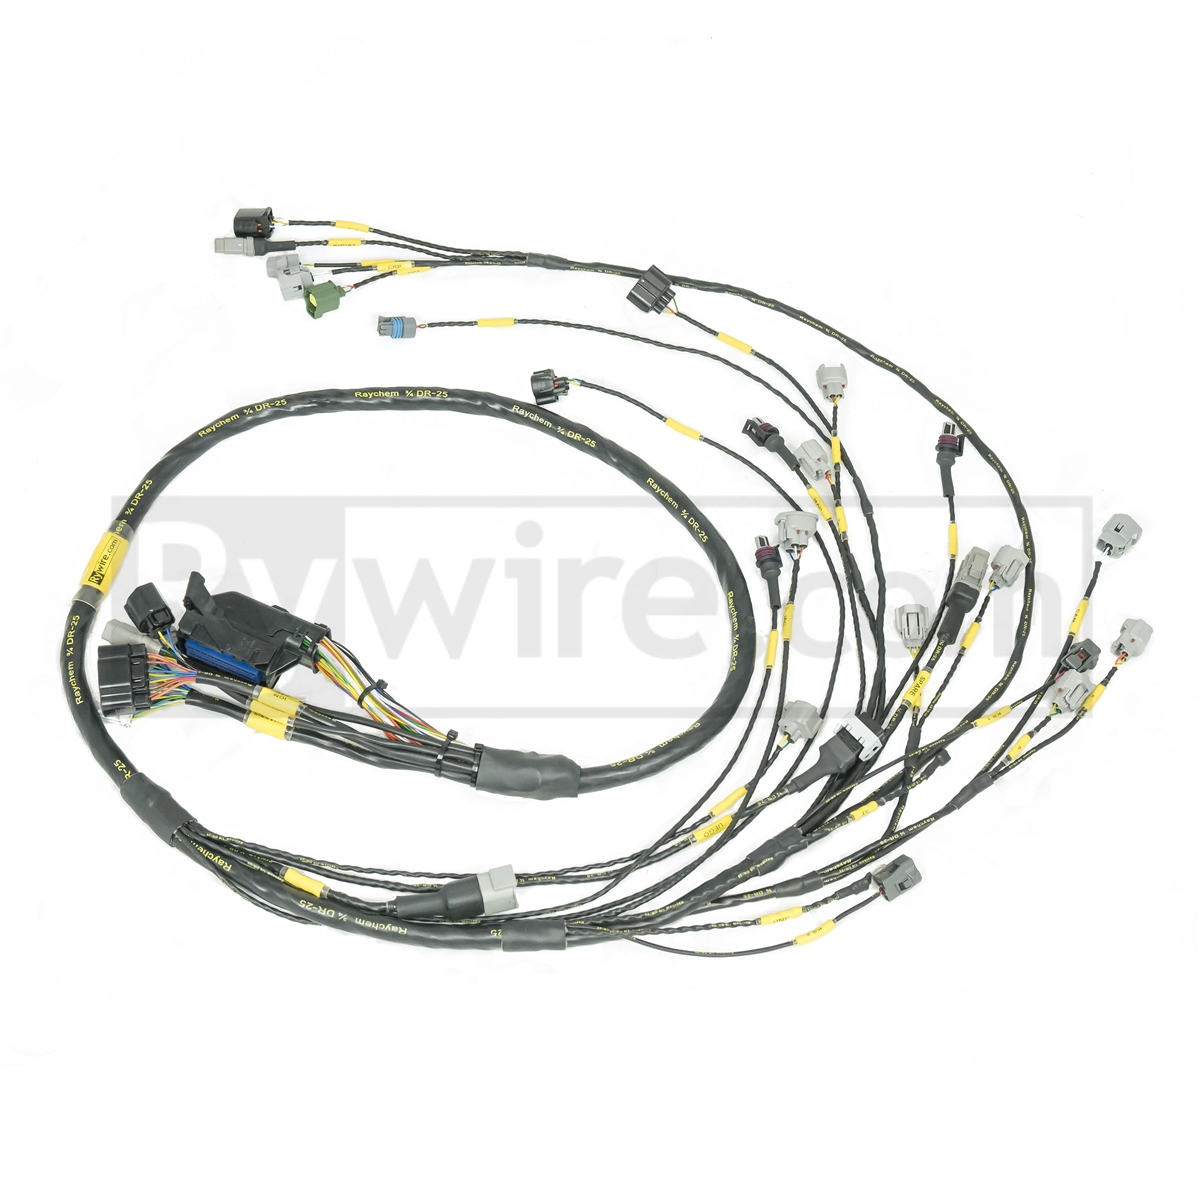 toyota 2jz infinity 506 mil spec engine harness ford engine wiring harness toyota engine harness [ 1200 x 1200 Pixel ]